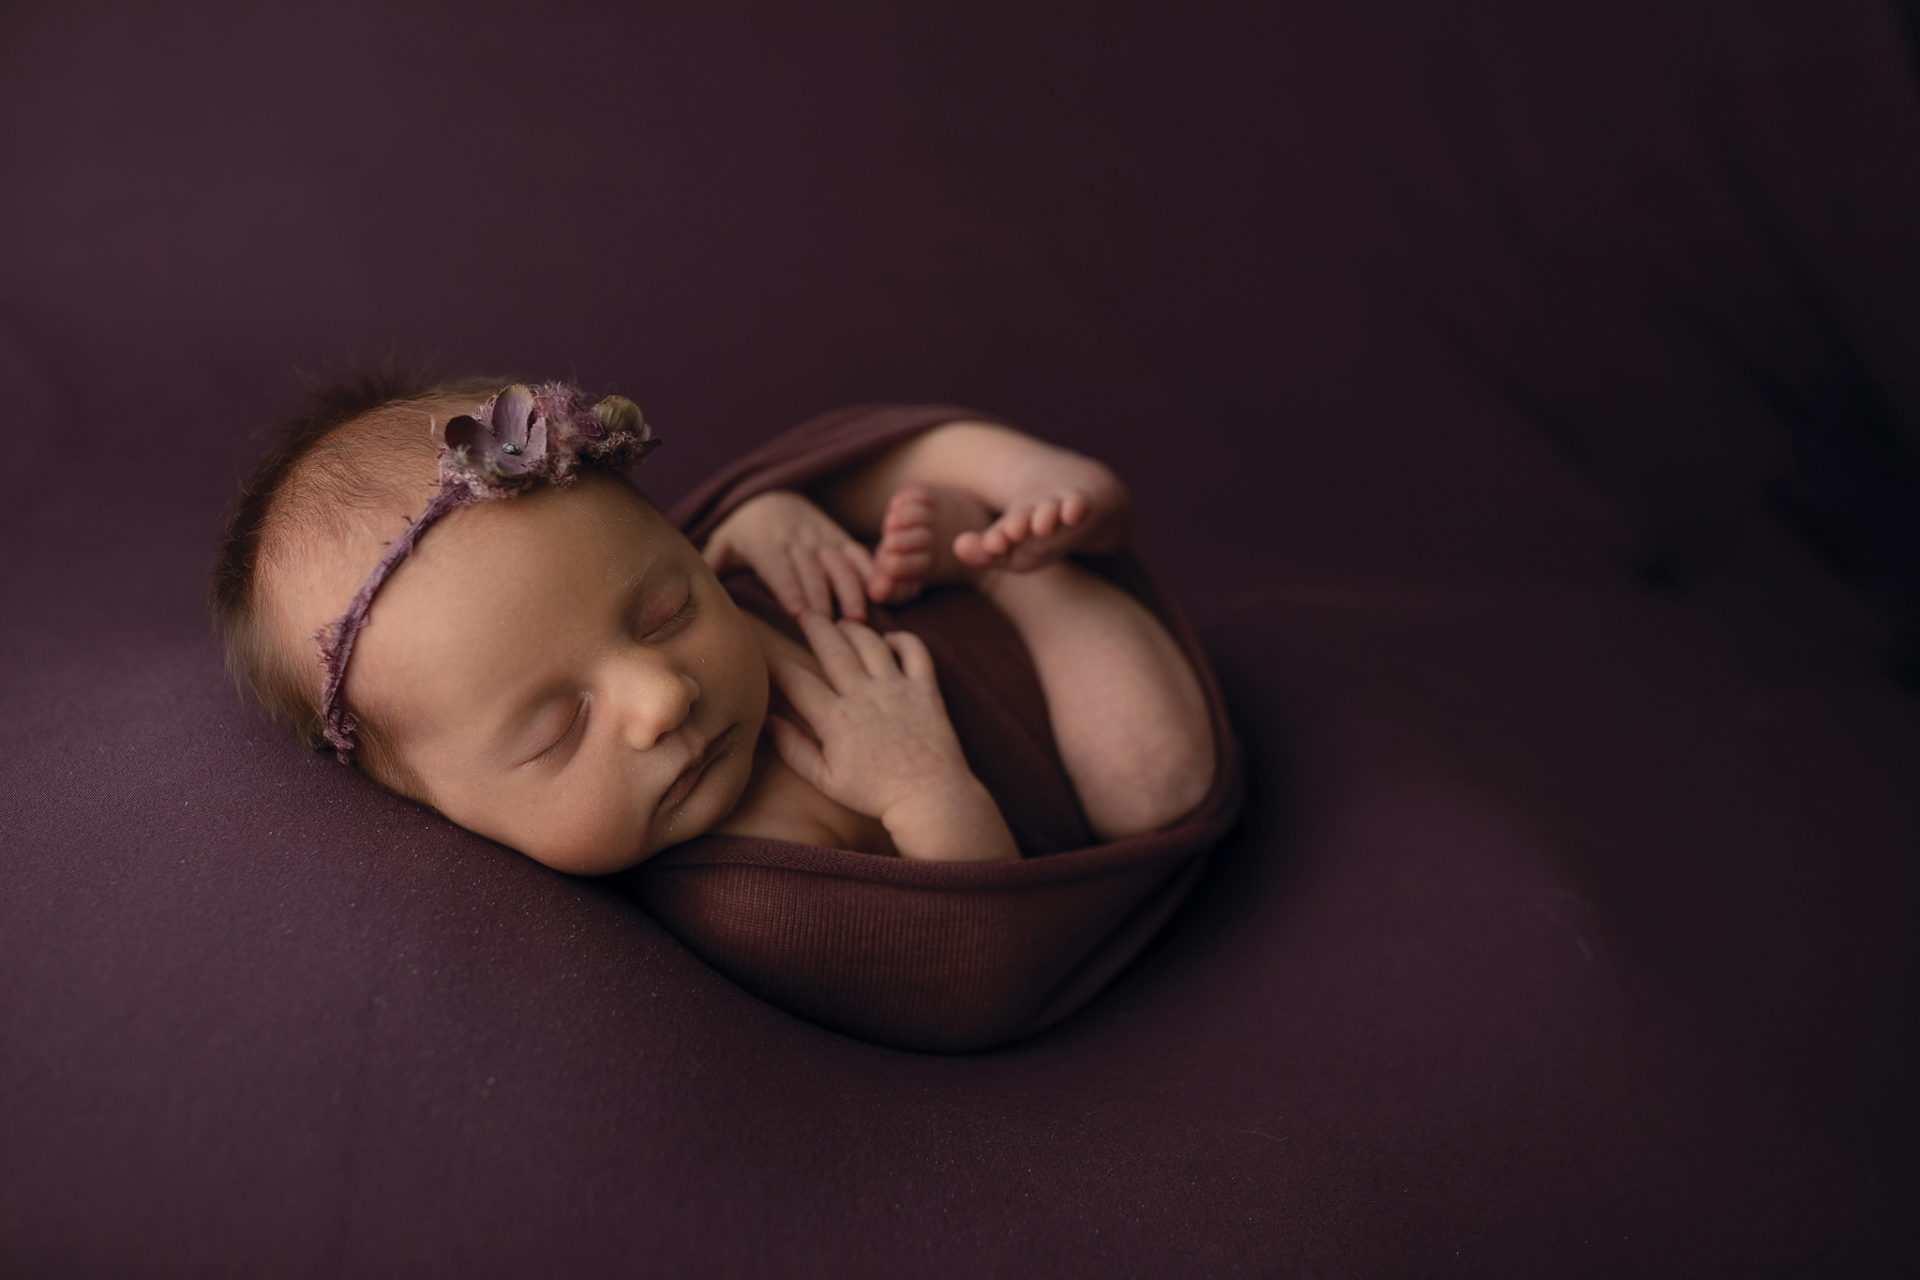 newborn baby cute picture